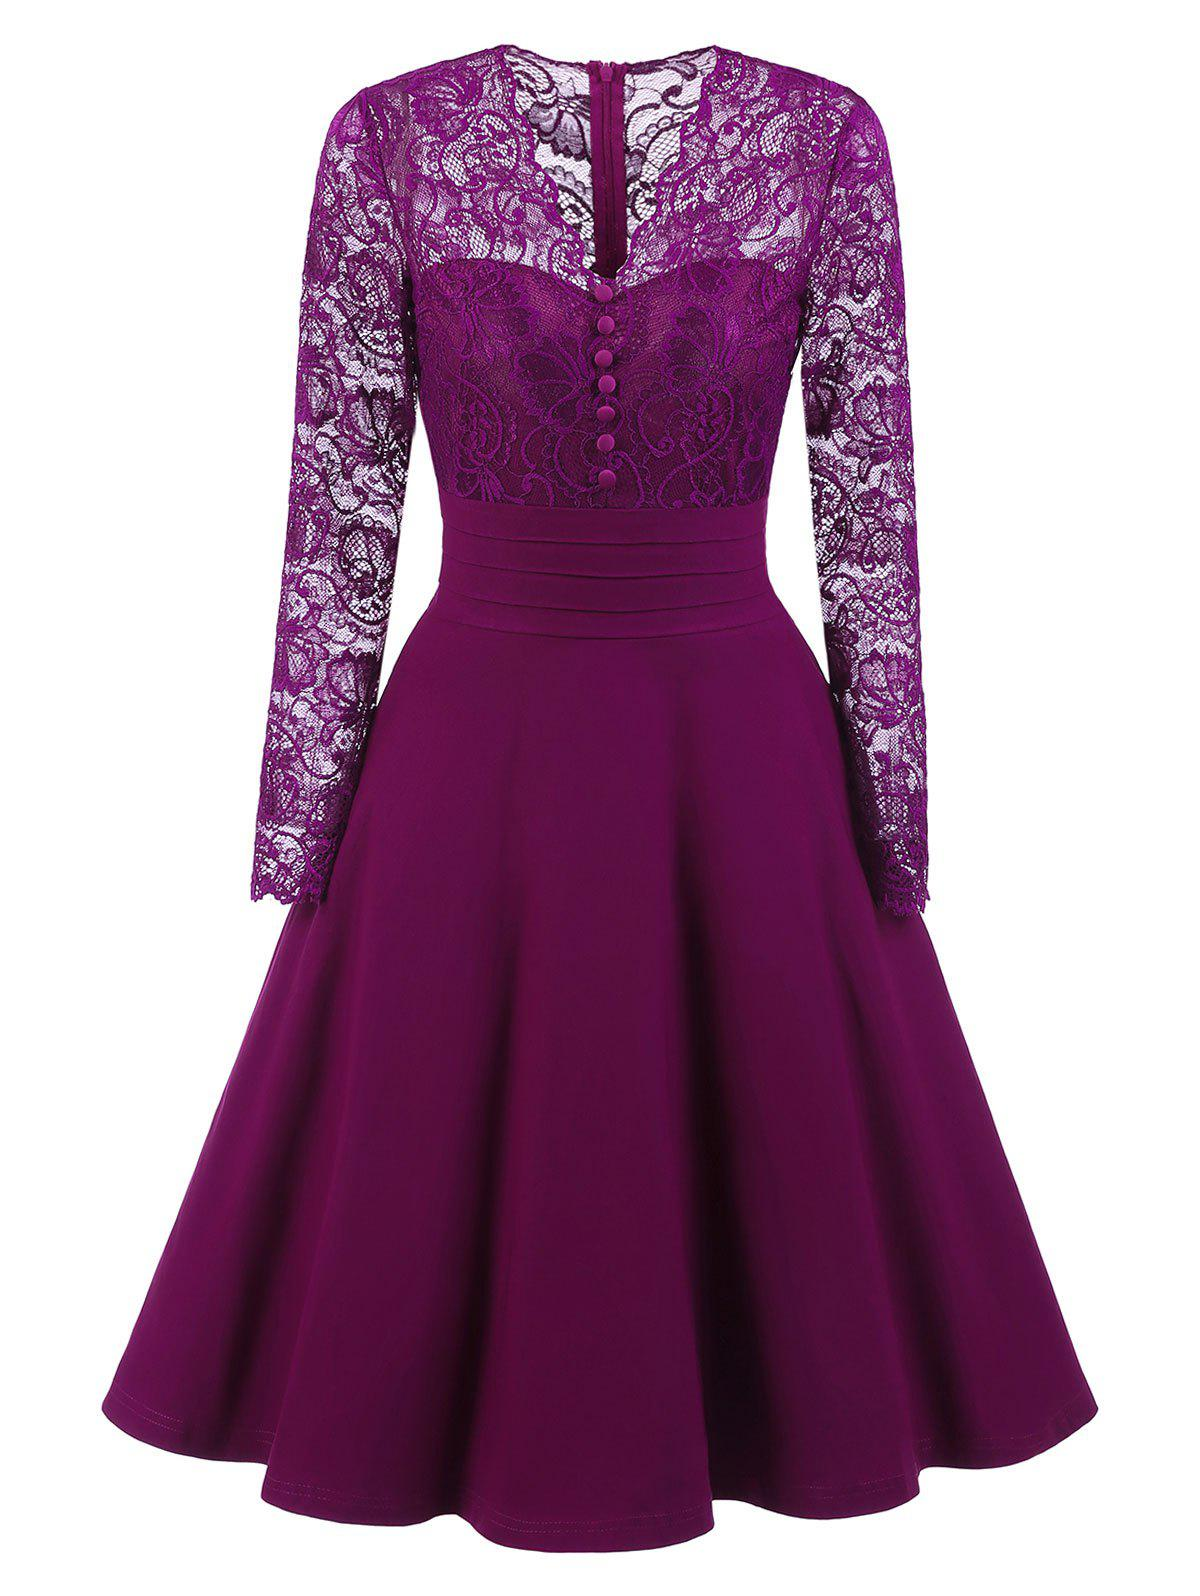 V-neck Lace Trim Vintage A Line DressWOMEN<br><br>Size: S; Color: PURPLE; Style: Vintage; Material: Polyester,Spandex; Silhouette: A-Line; Dresses Length: Knee-Length; Neckline: V-Neck; Sleeve Length: Long Sleeves; Embellishment: Lace; Pattern Type: Solid; With Belt: No; Season: Fall,Spring; Weight: 0.4550kg; Package Contents: 1 x Dress;